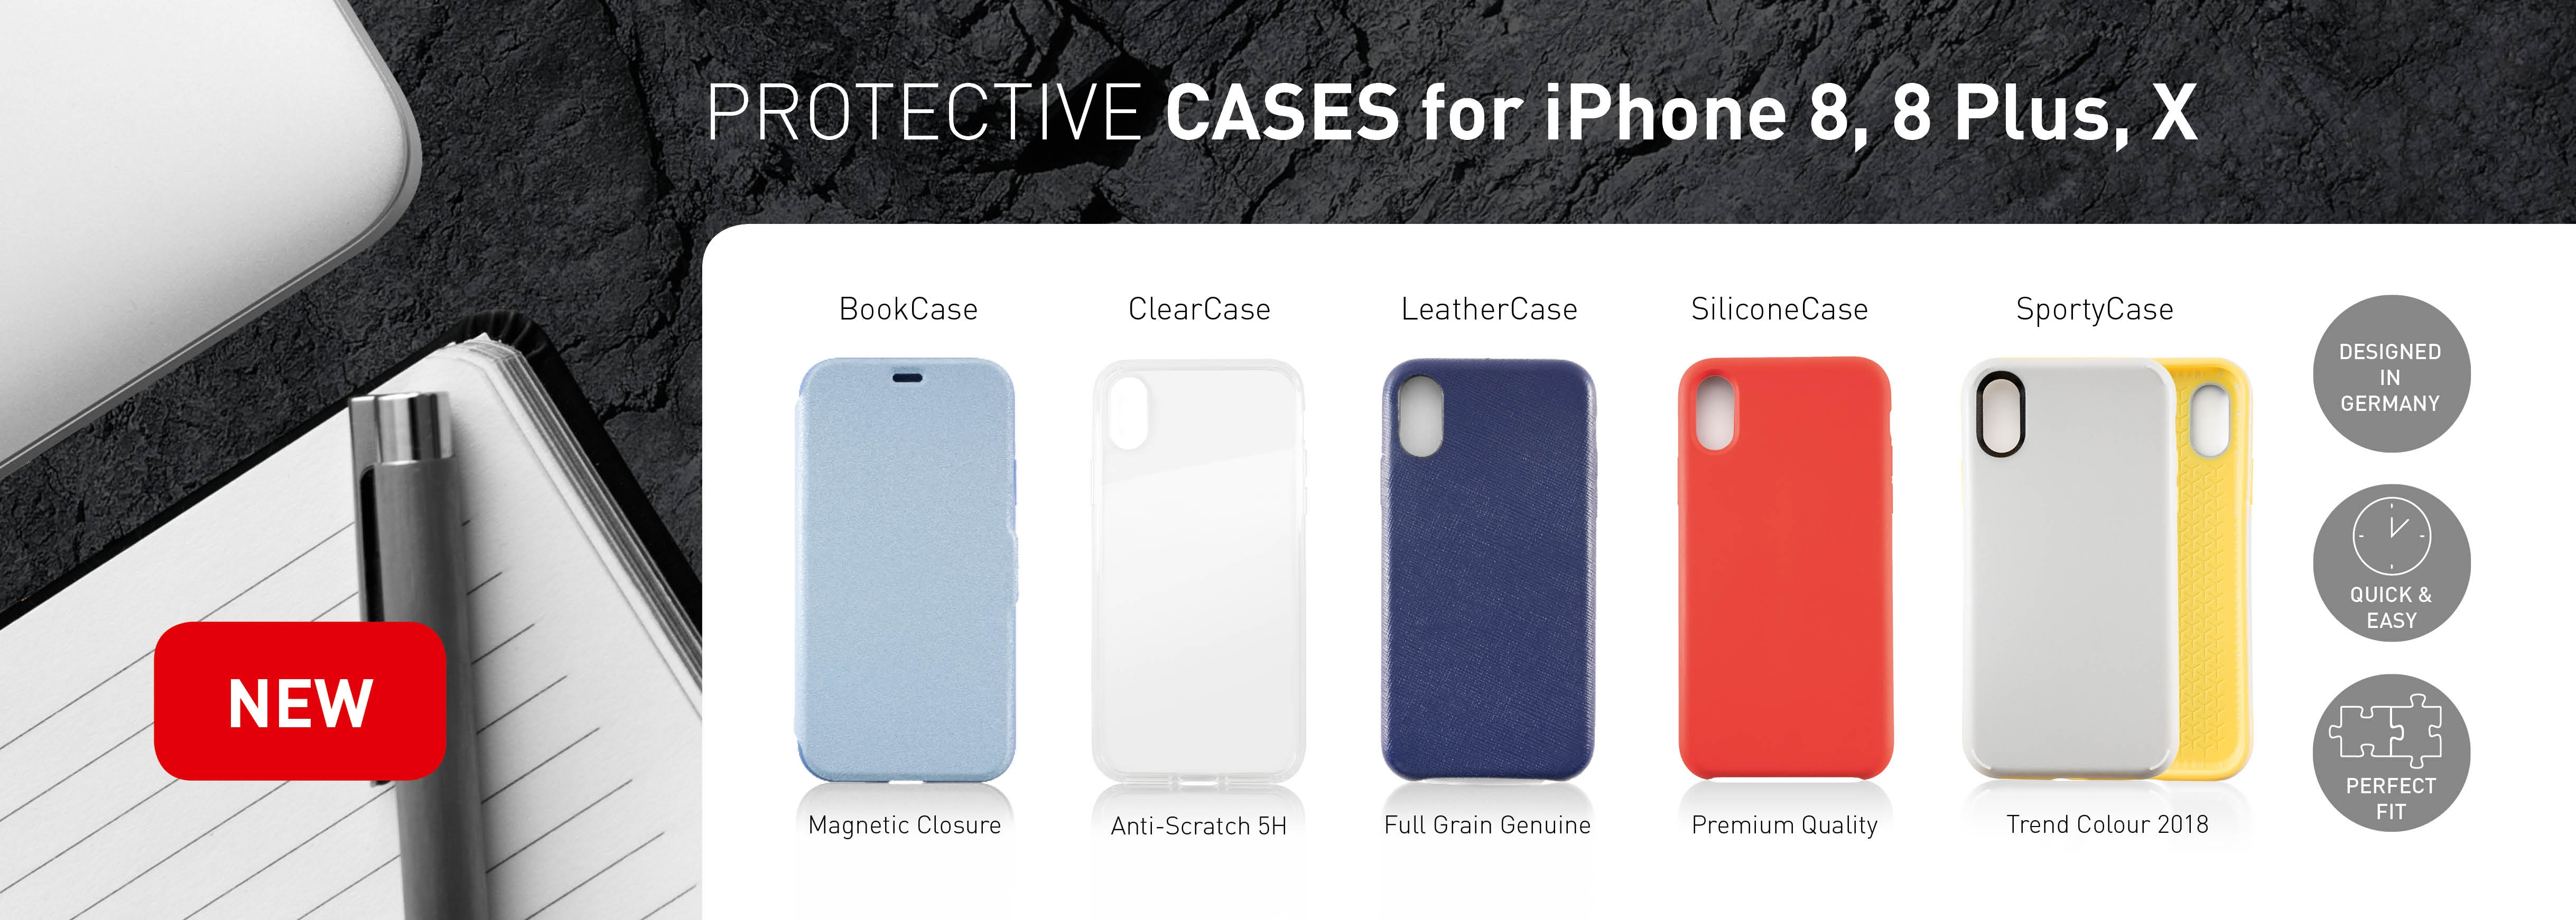 Protetive Cases for iPhone 8, iPhone 8 Plus, iPhone X